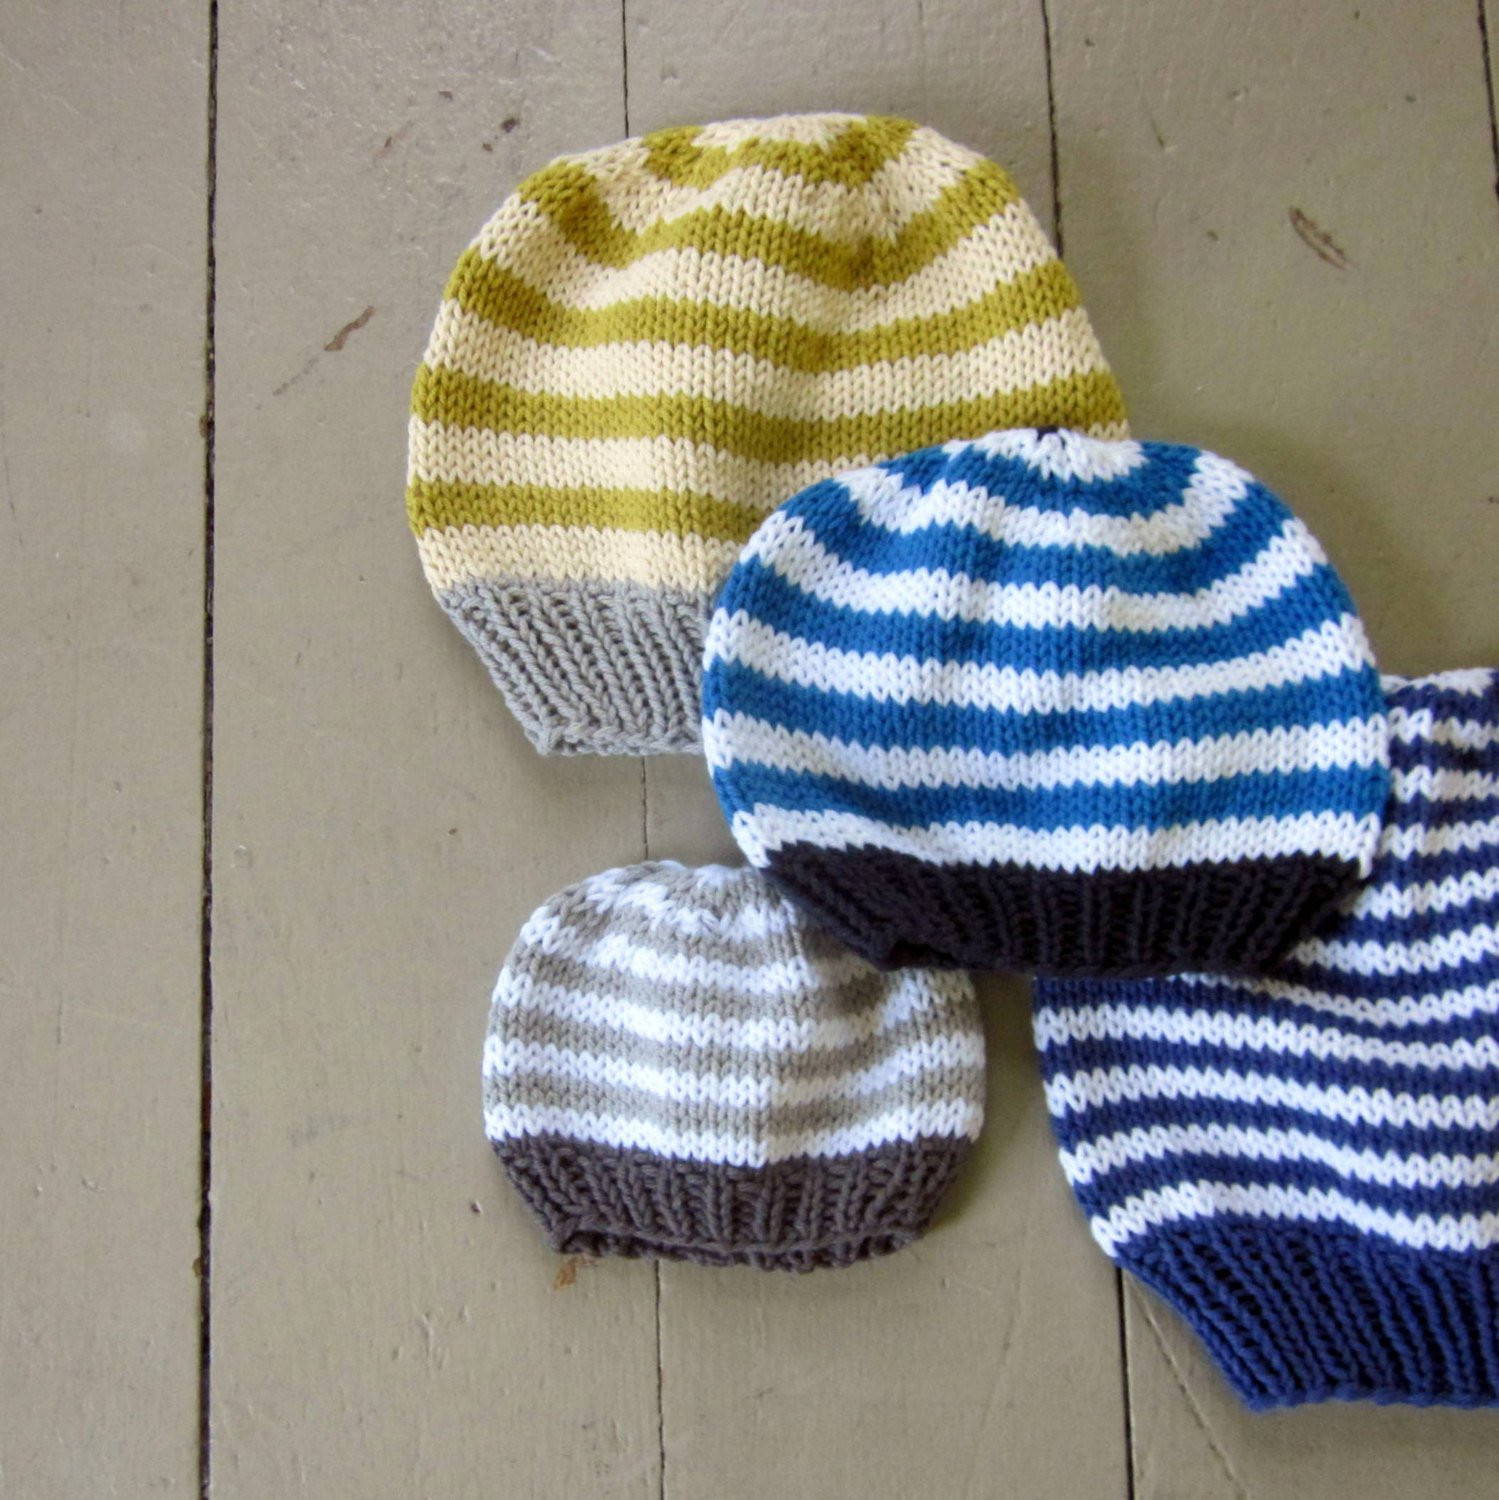 Best Of Baby Hat Knitting Pattern Basic Beanie Pdf by Sweetbabydolly Knitted Hats for toddlers Of Attractive 49 Images Knitted Hats for toddlers